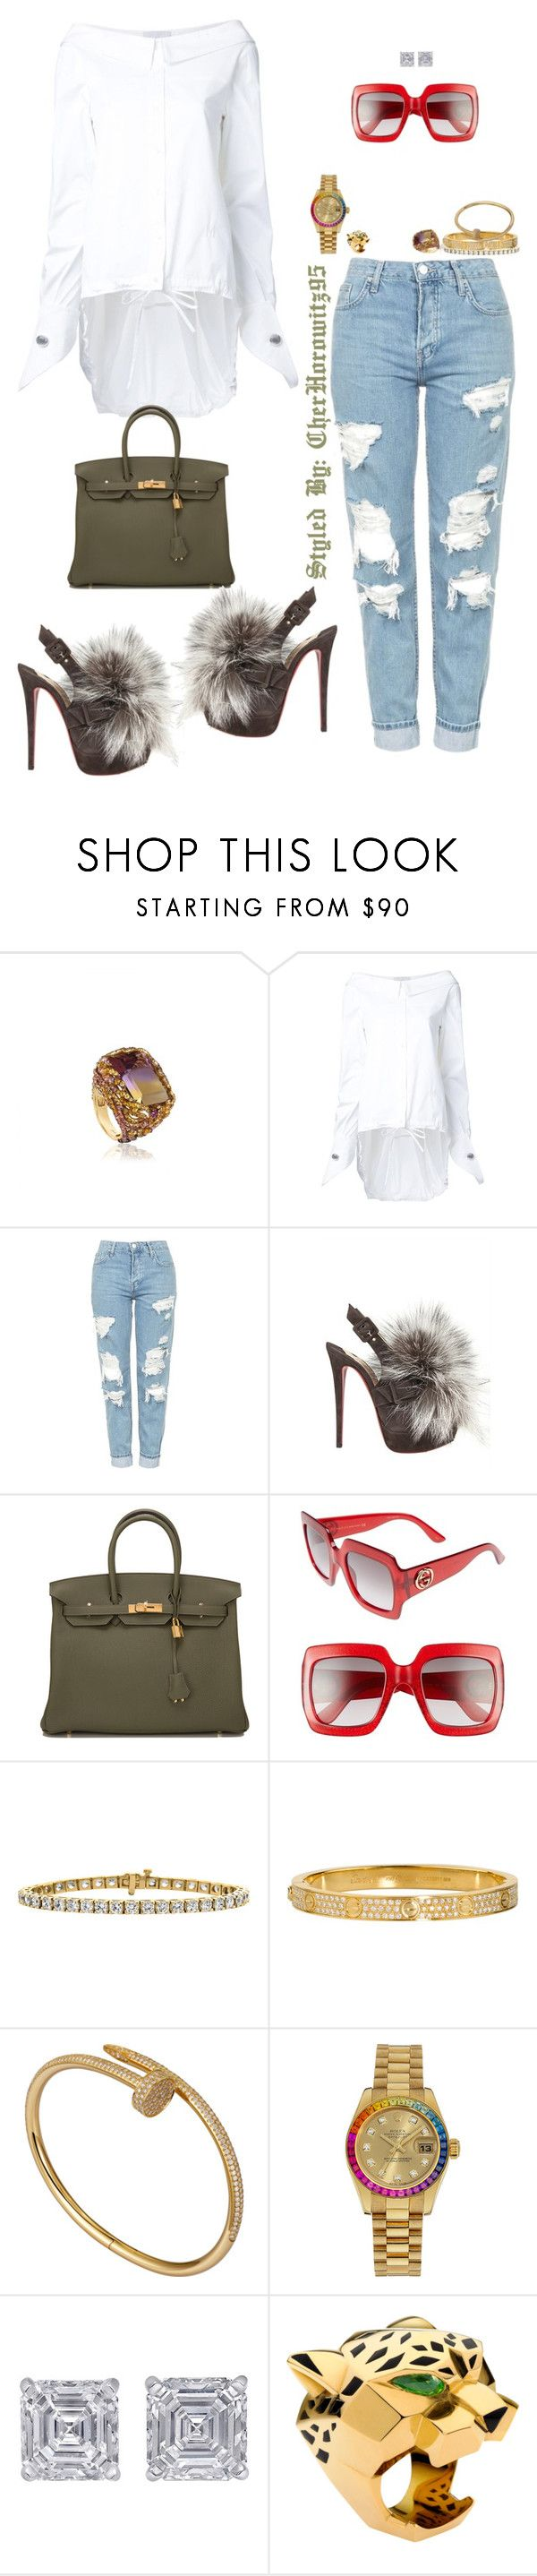 """""""Untitled #799"""" by cherhorowitz95 ❤ liked on Polyvore featuring Monse, Topshop, Christian Louboutin, Hermès, Gucci, Cartier, Rolex and Jewels by Viggi"""